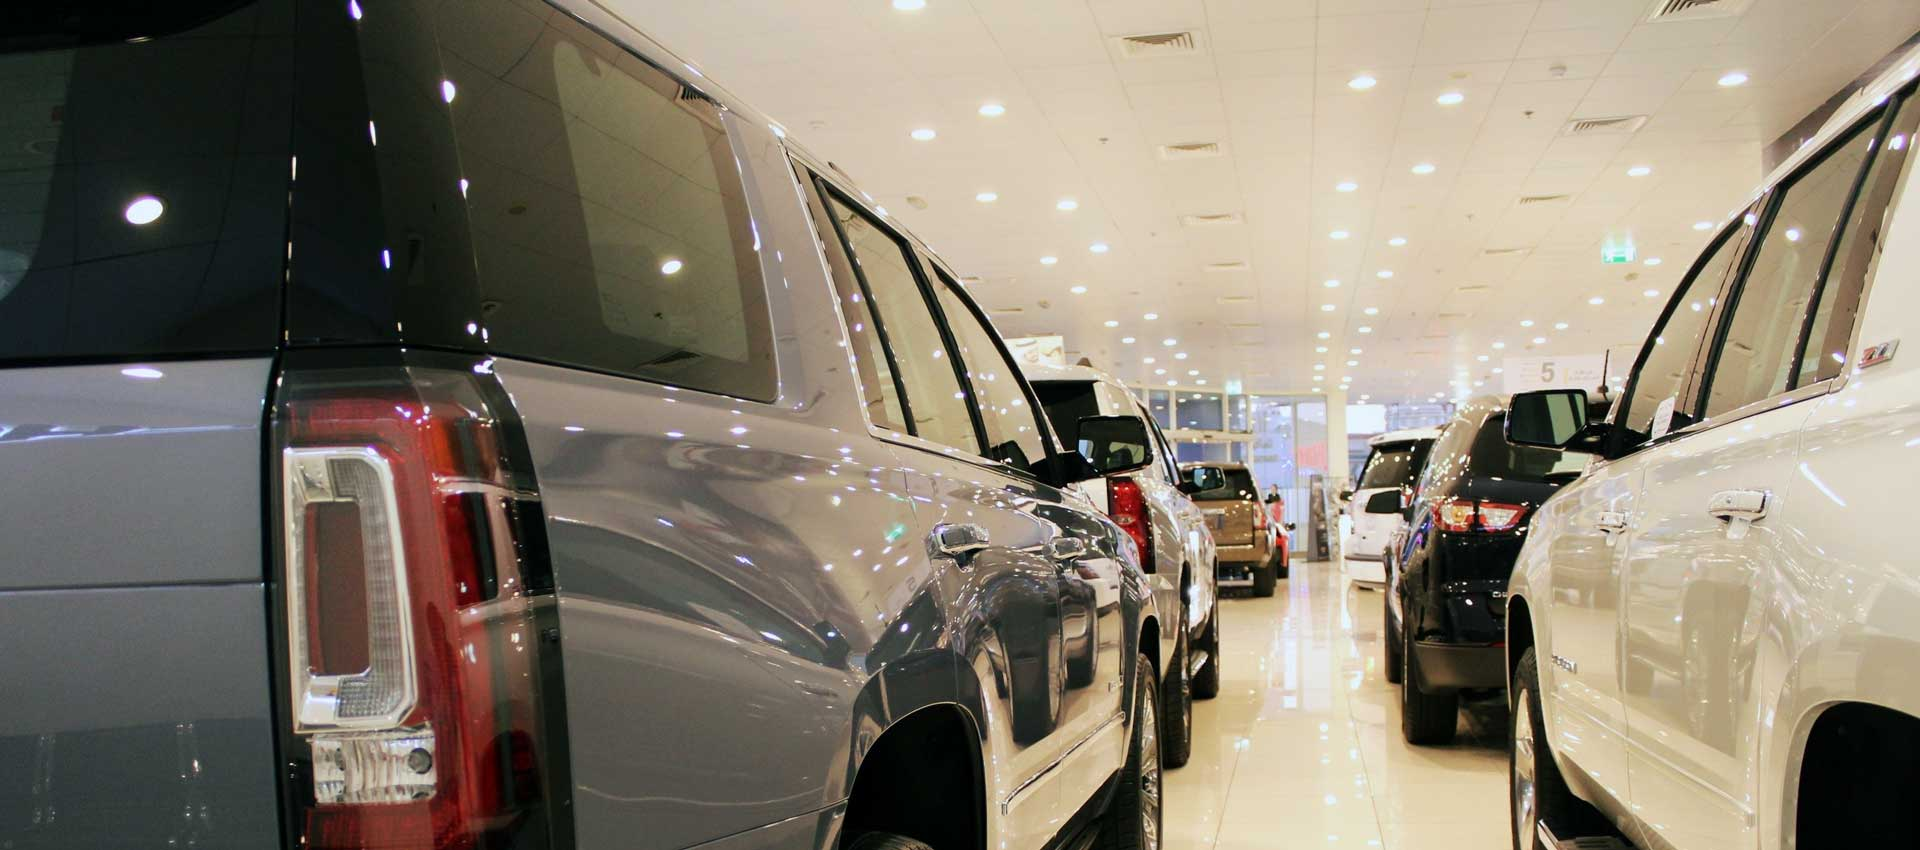 Conducting-Safe-Business-In-Car-Showrooms-Following-Coronavirus